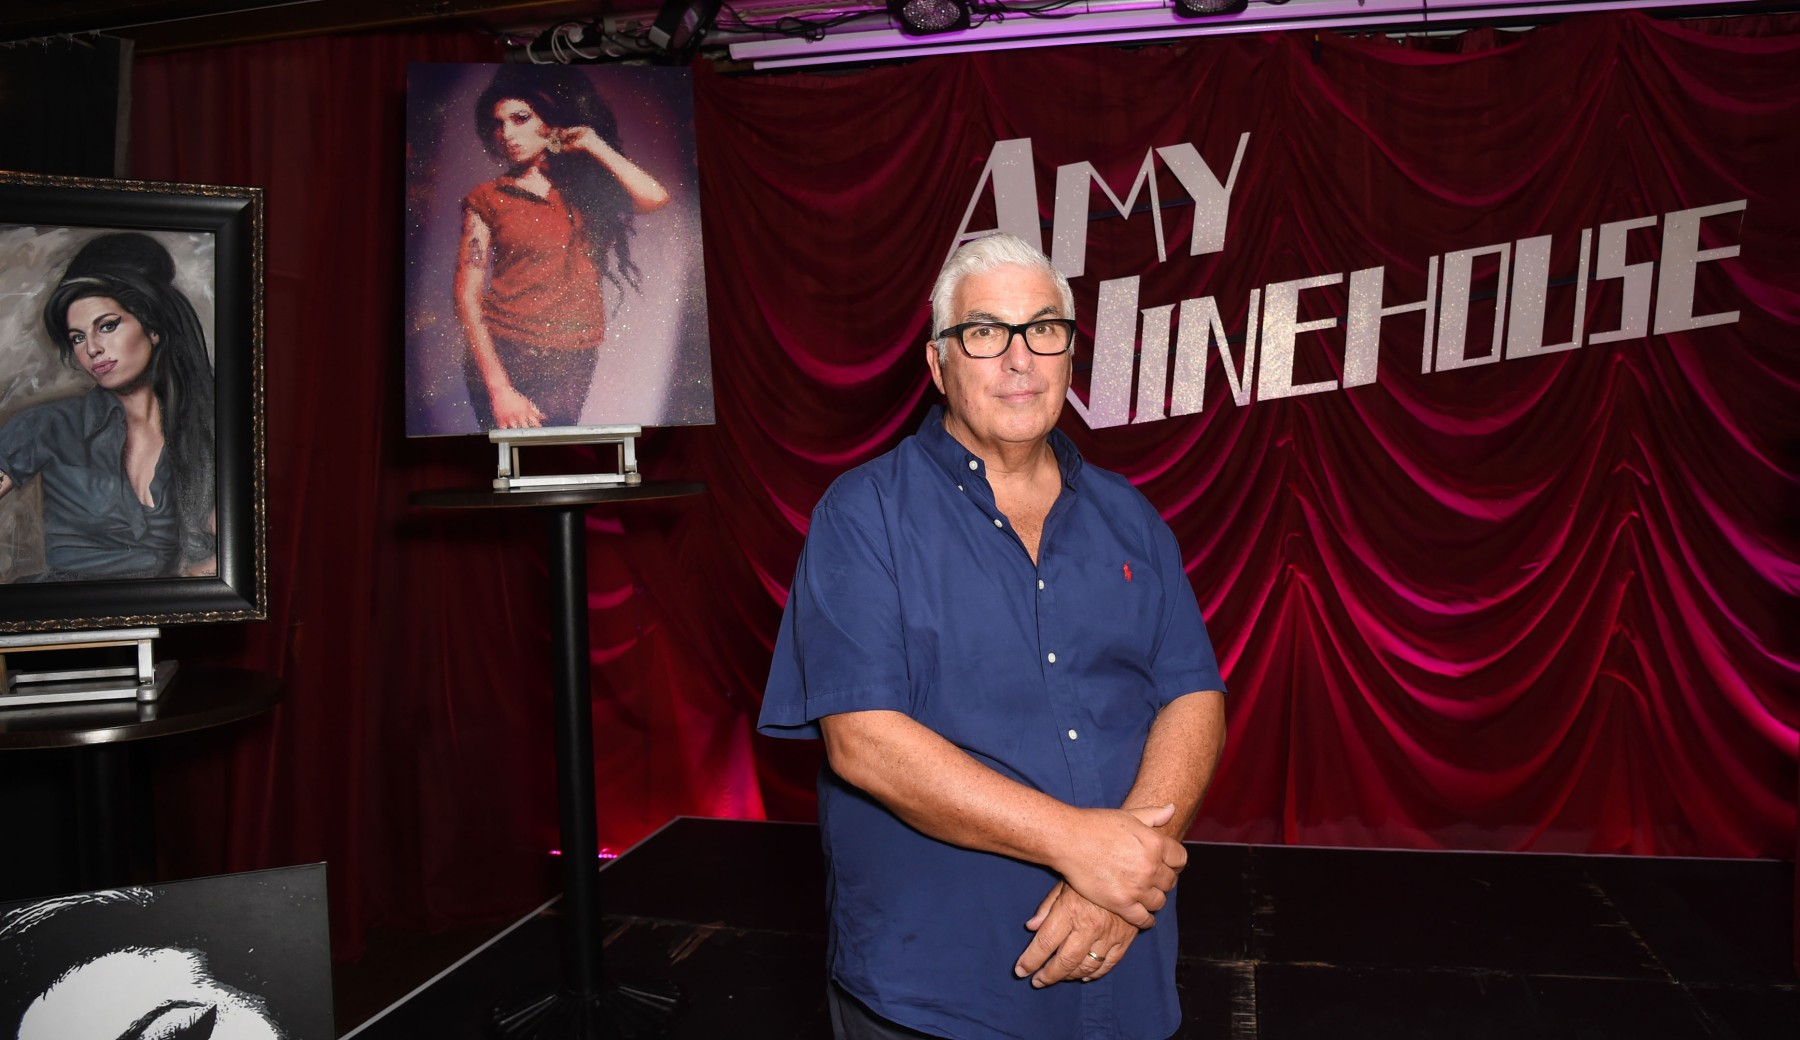 Mitch Winehouse attends a private view of The Amy Winehouse Foundation: Hope at Century Club on September 13, 2016 in London, England.  (Photo by David M. Benett/Dave Benett/Getty Images)